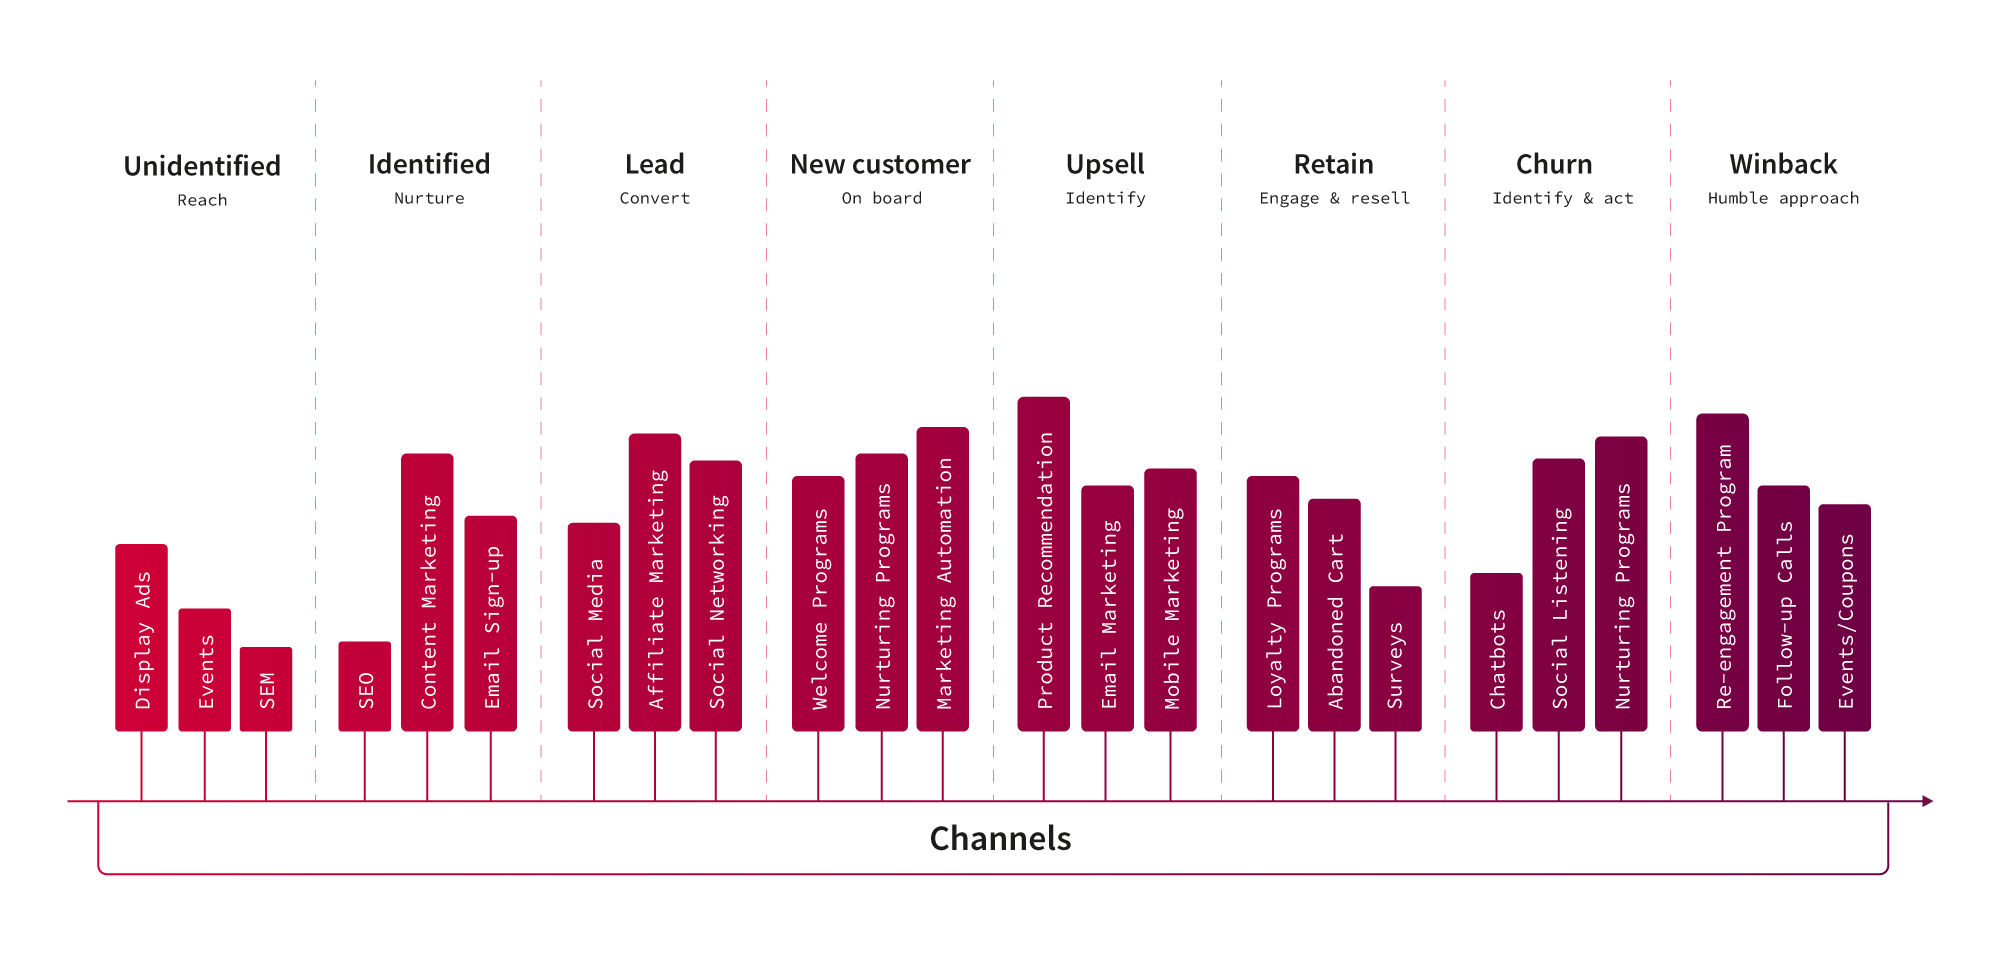 customer journey across channels